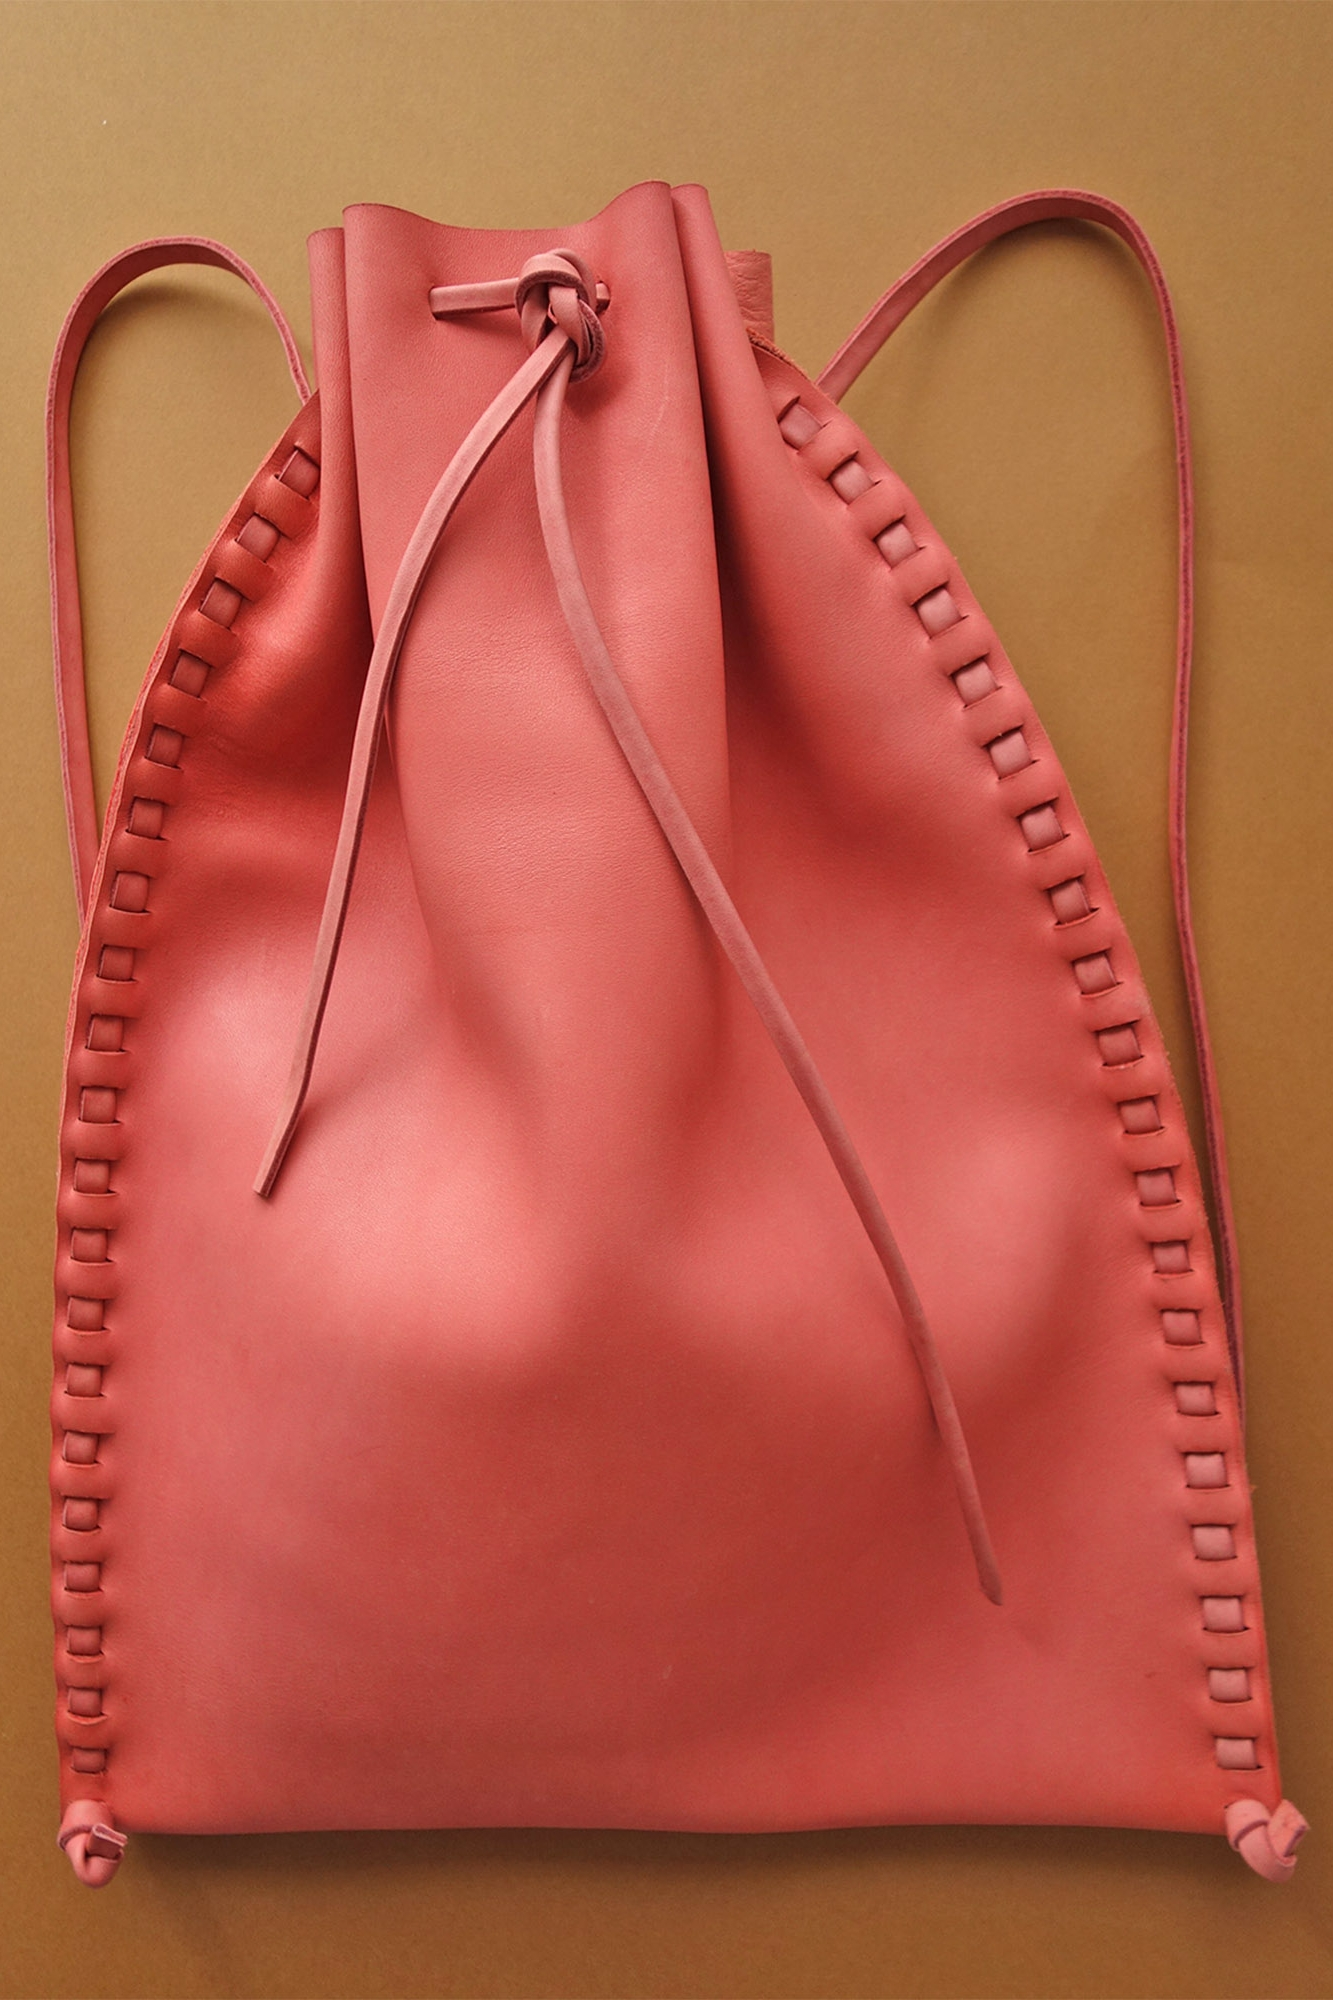 Leather Bags - Leather bags handmade without a stitch.